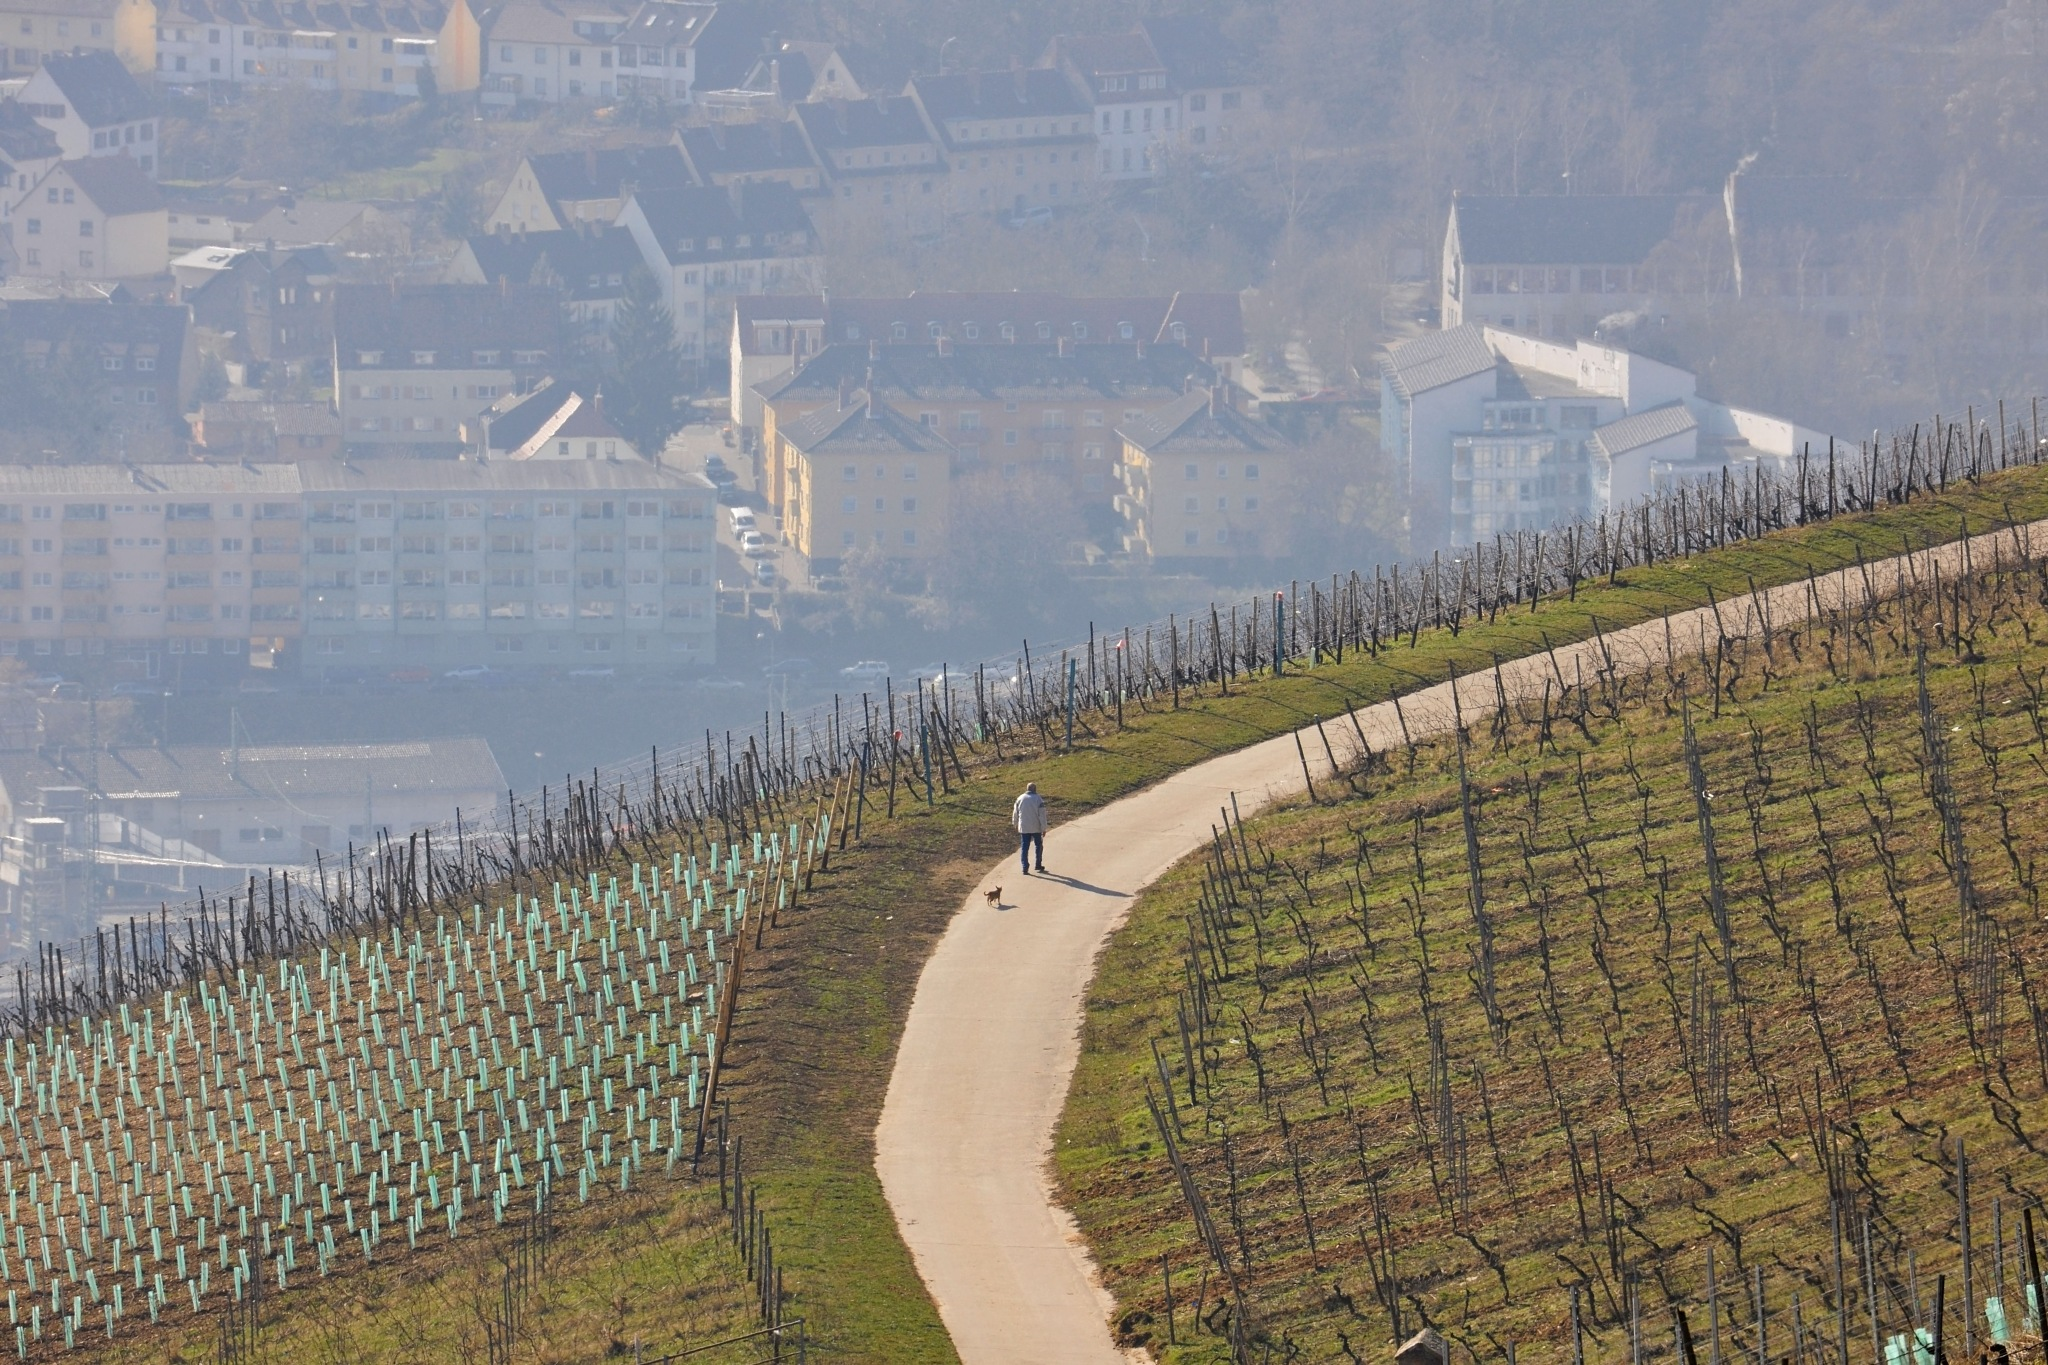 Walkin' the Dog - Over the Rhine Valley by Hartmut Ustorf